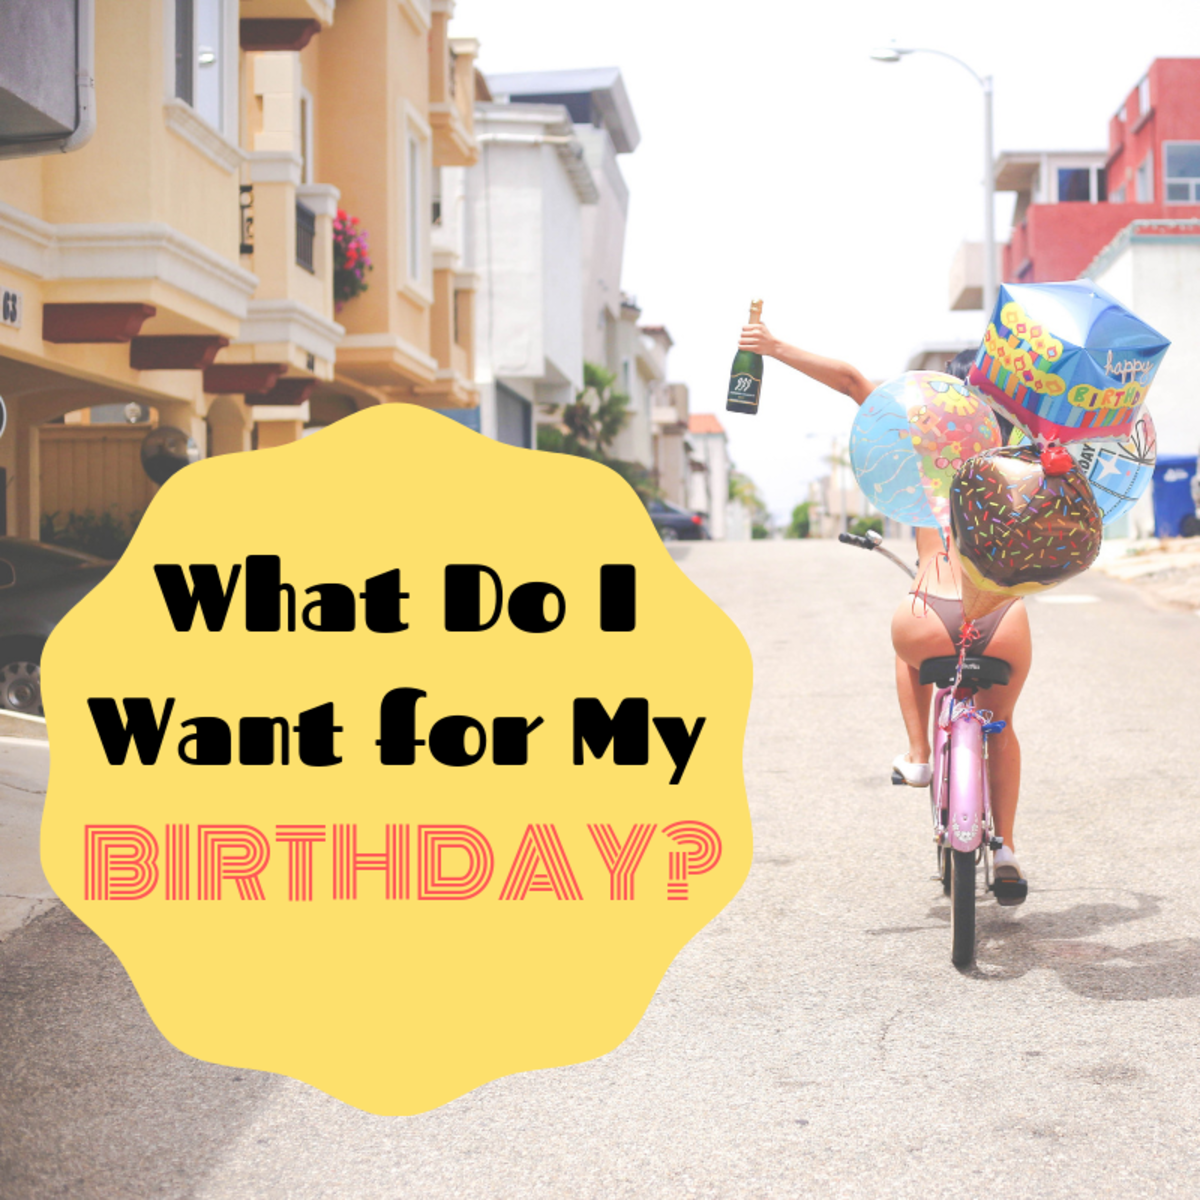 What Do I Want for My Birthday?